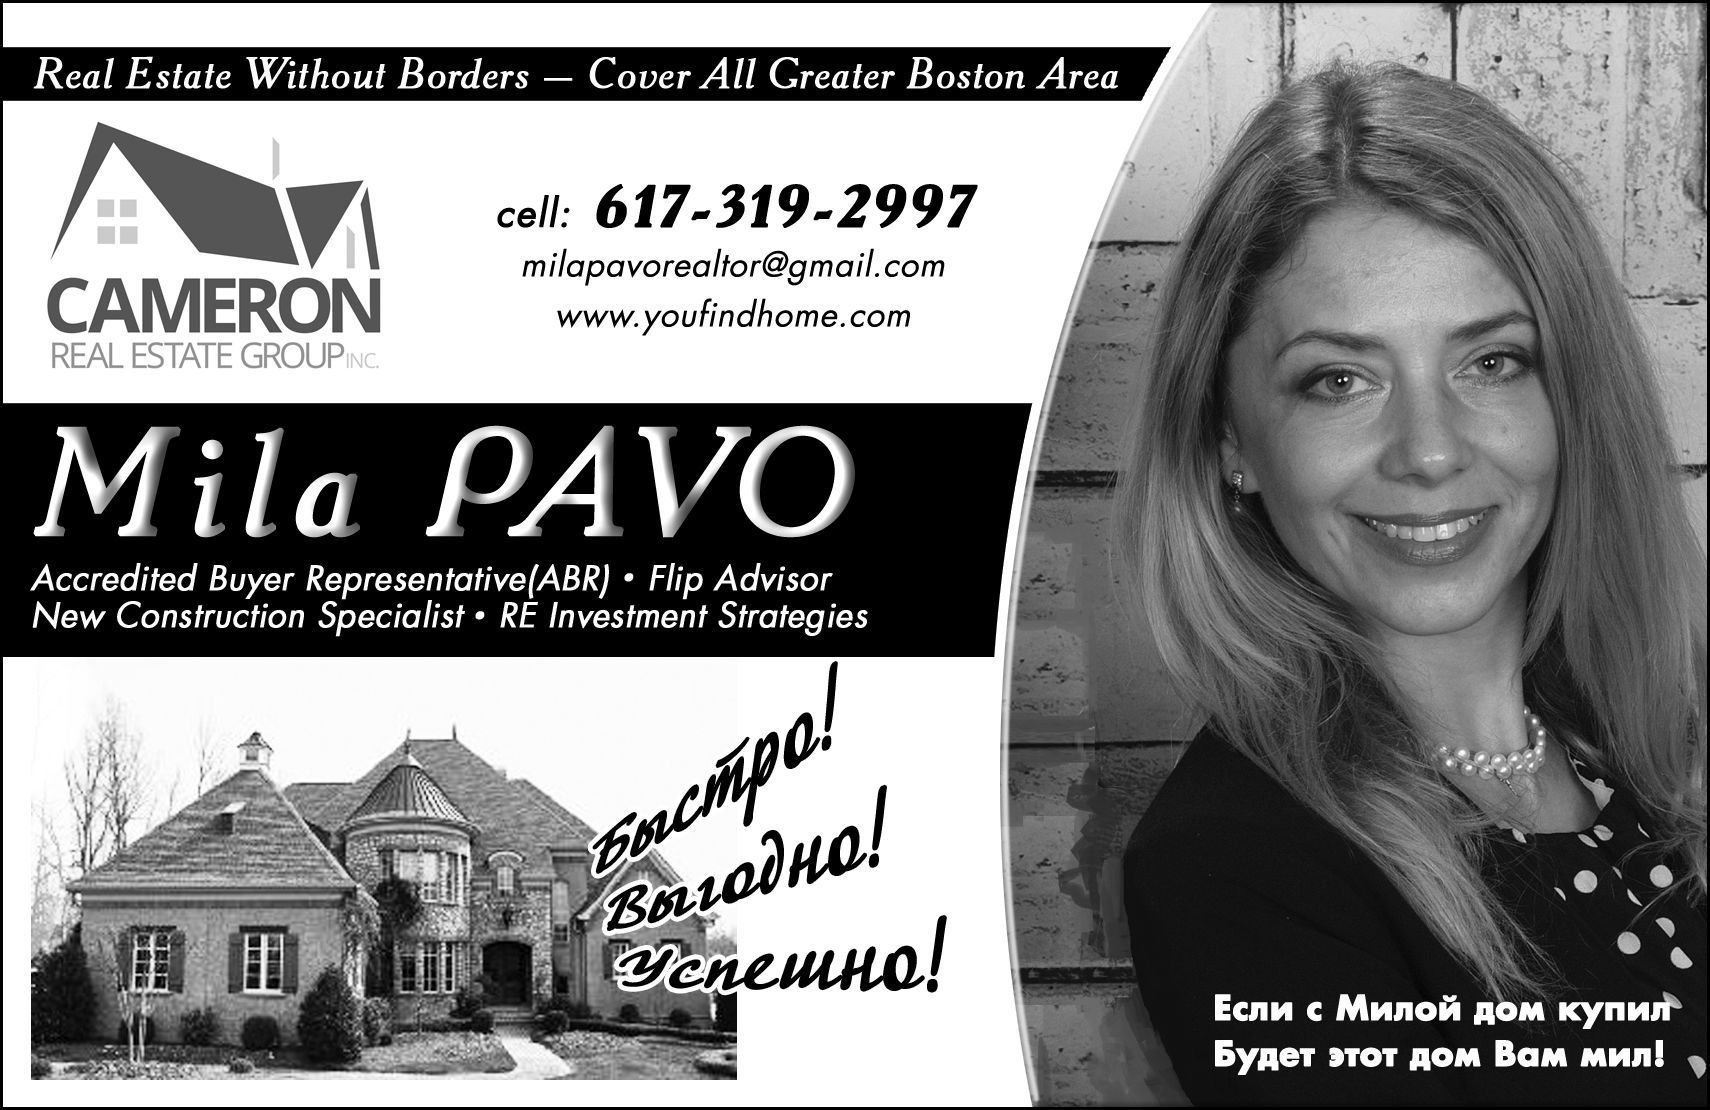 Mila Pavo, Cameron Real Estate Group